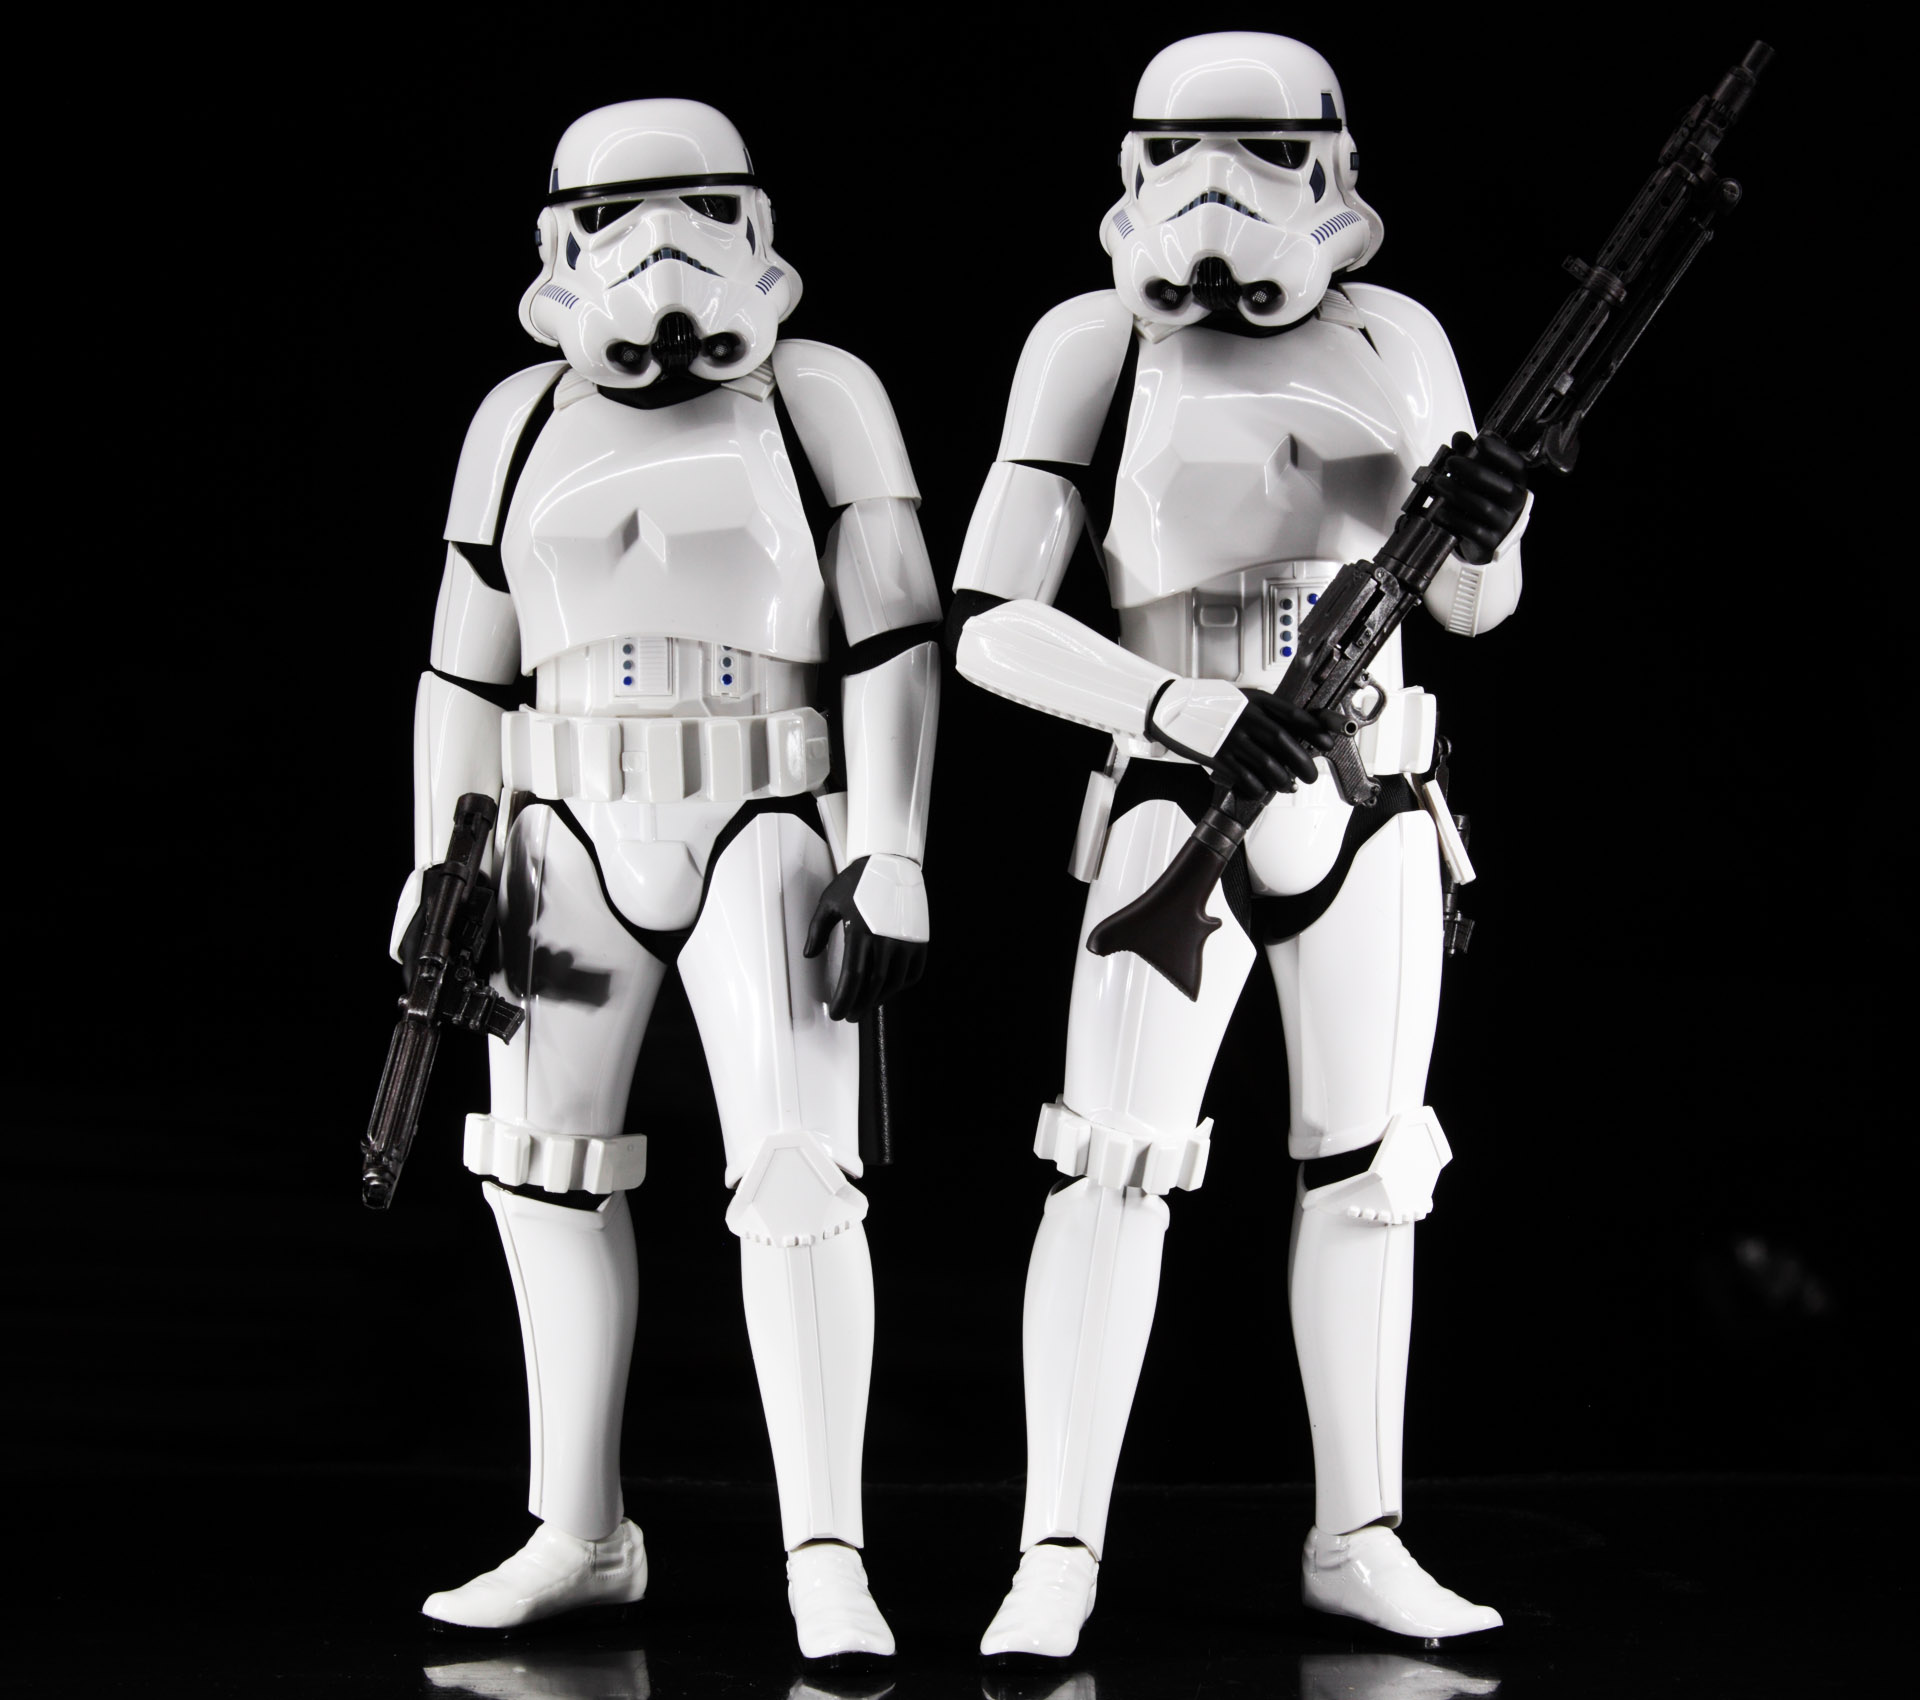 hottoys-star-wars-episode-4-a-new-hope-stormtroopers-set-picture01